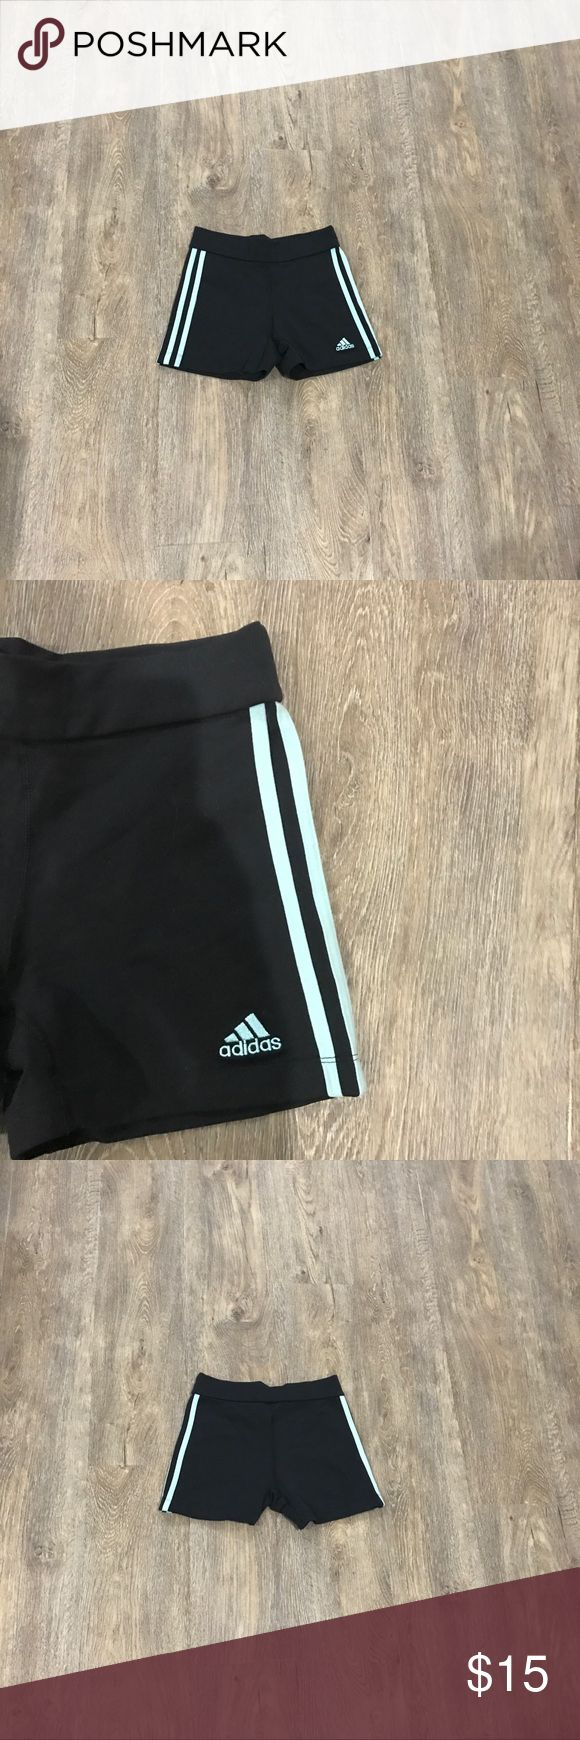 Adidas running shorts Black and teal adidas running shorts/spandex. Worn but no tears or stains. They do stretch. Very comfortable. Size small. adidas Pants Track Pants & Joggers